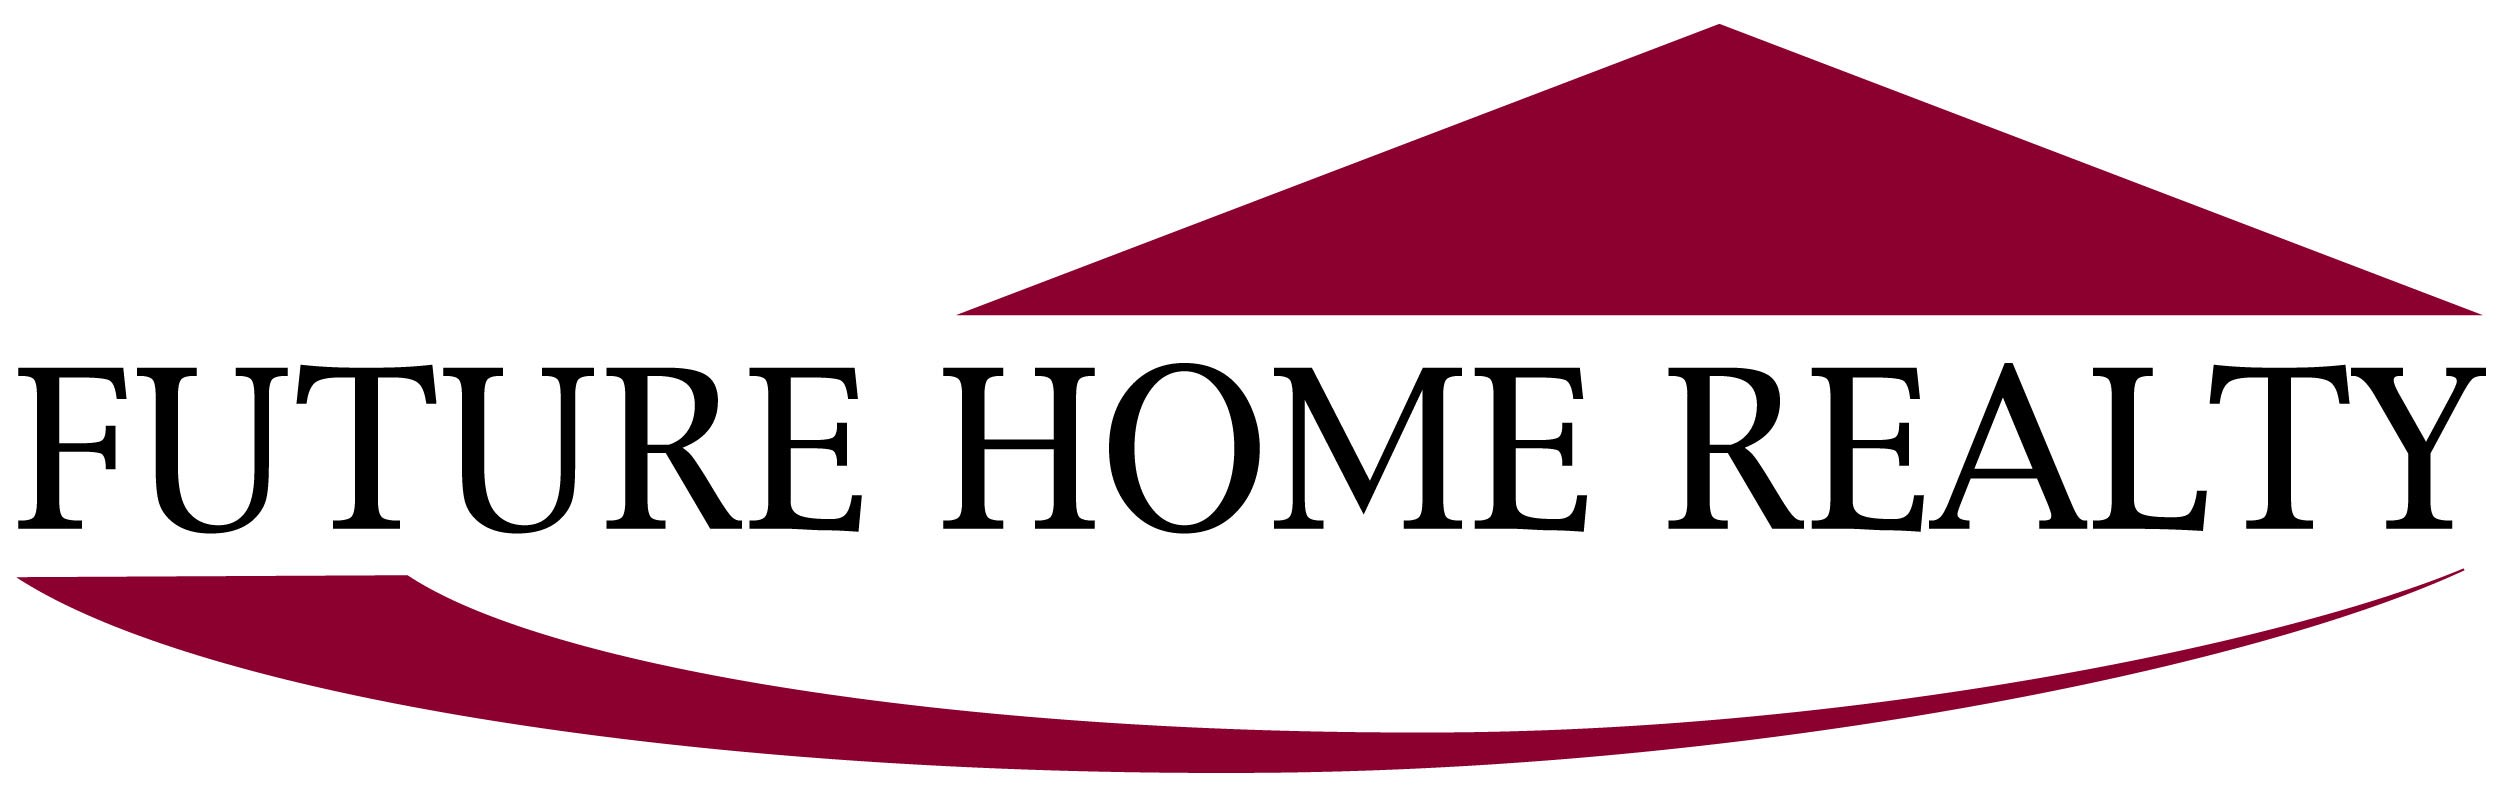 Search Future Home Realty Inc Local Real Estate and Homes for